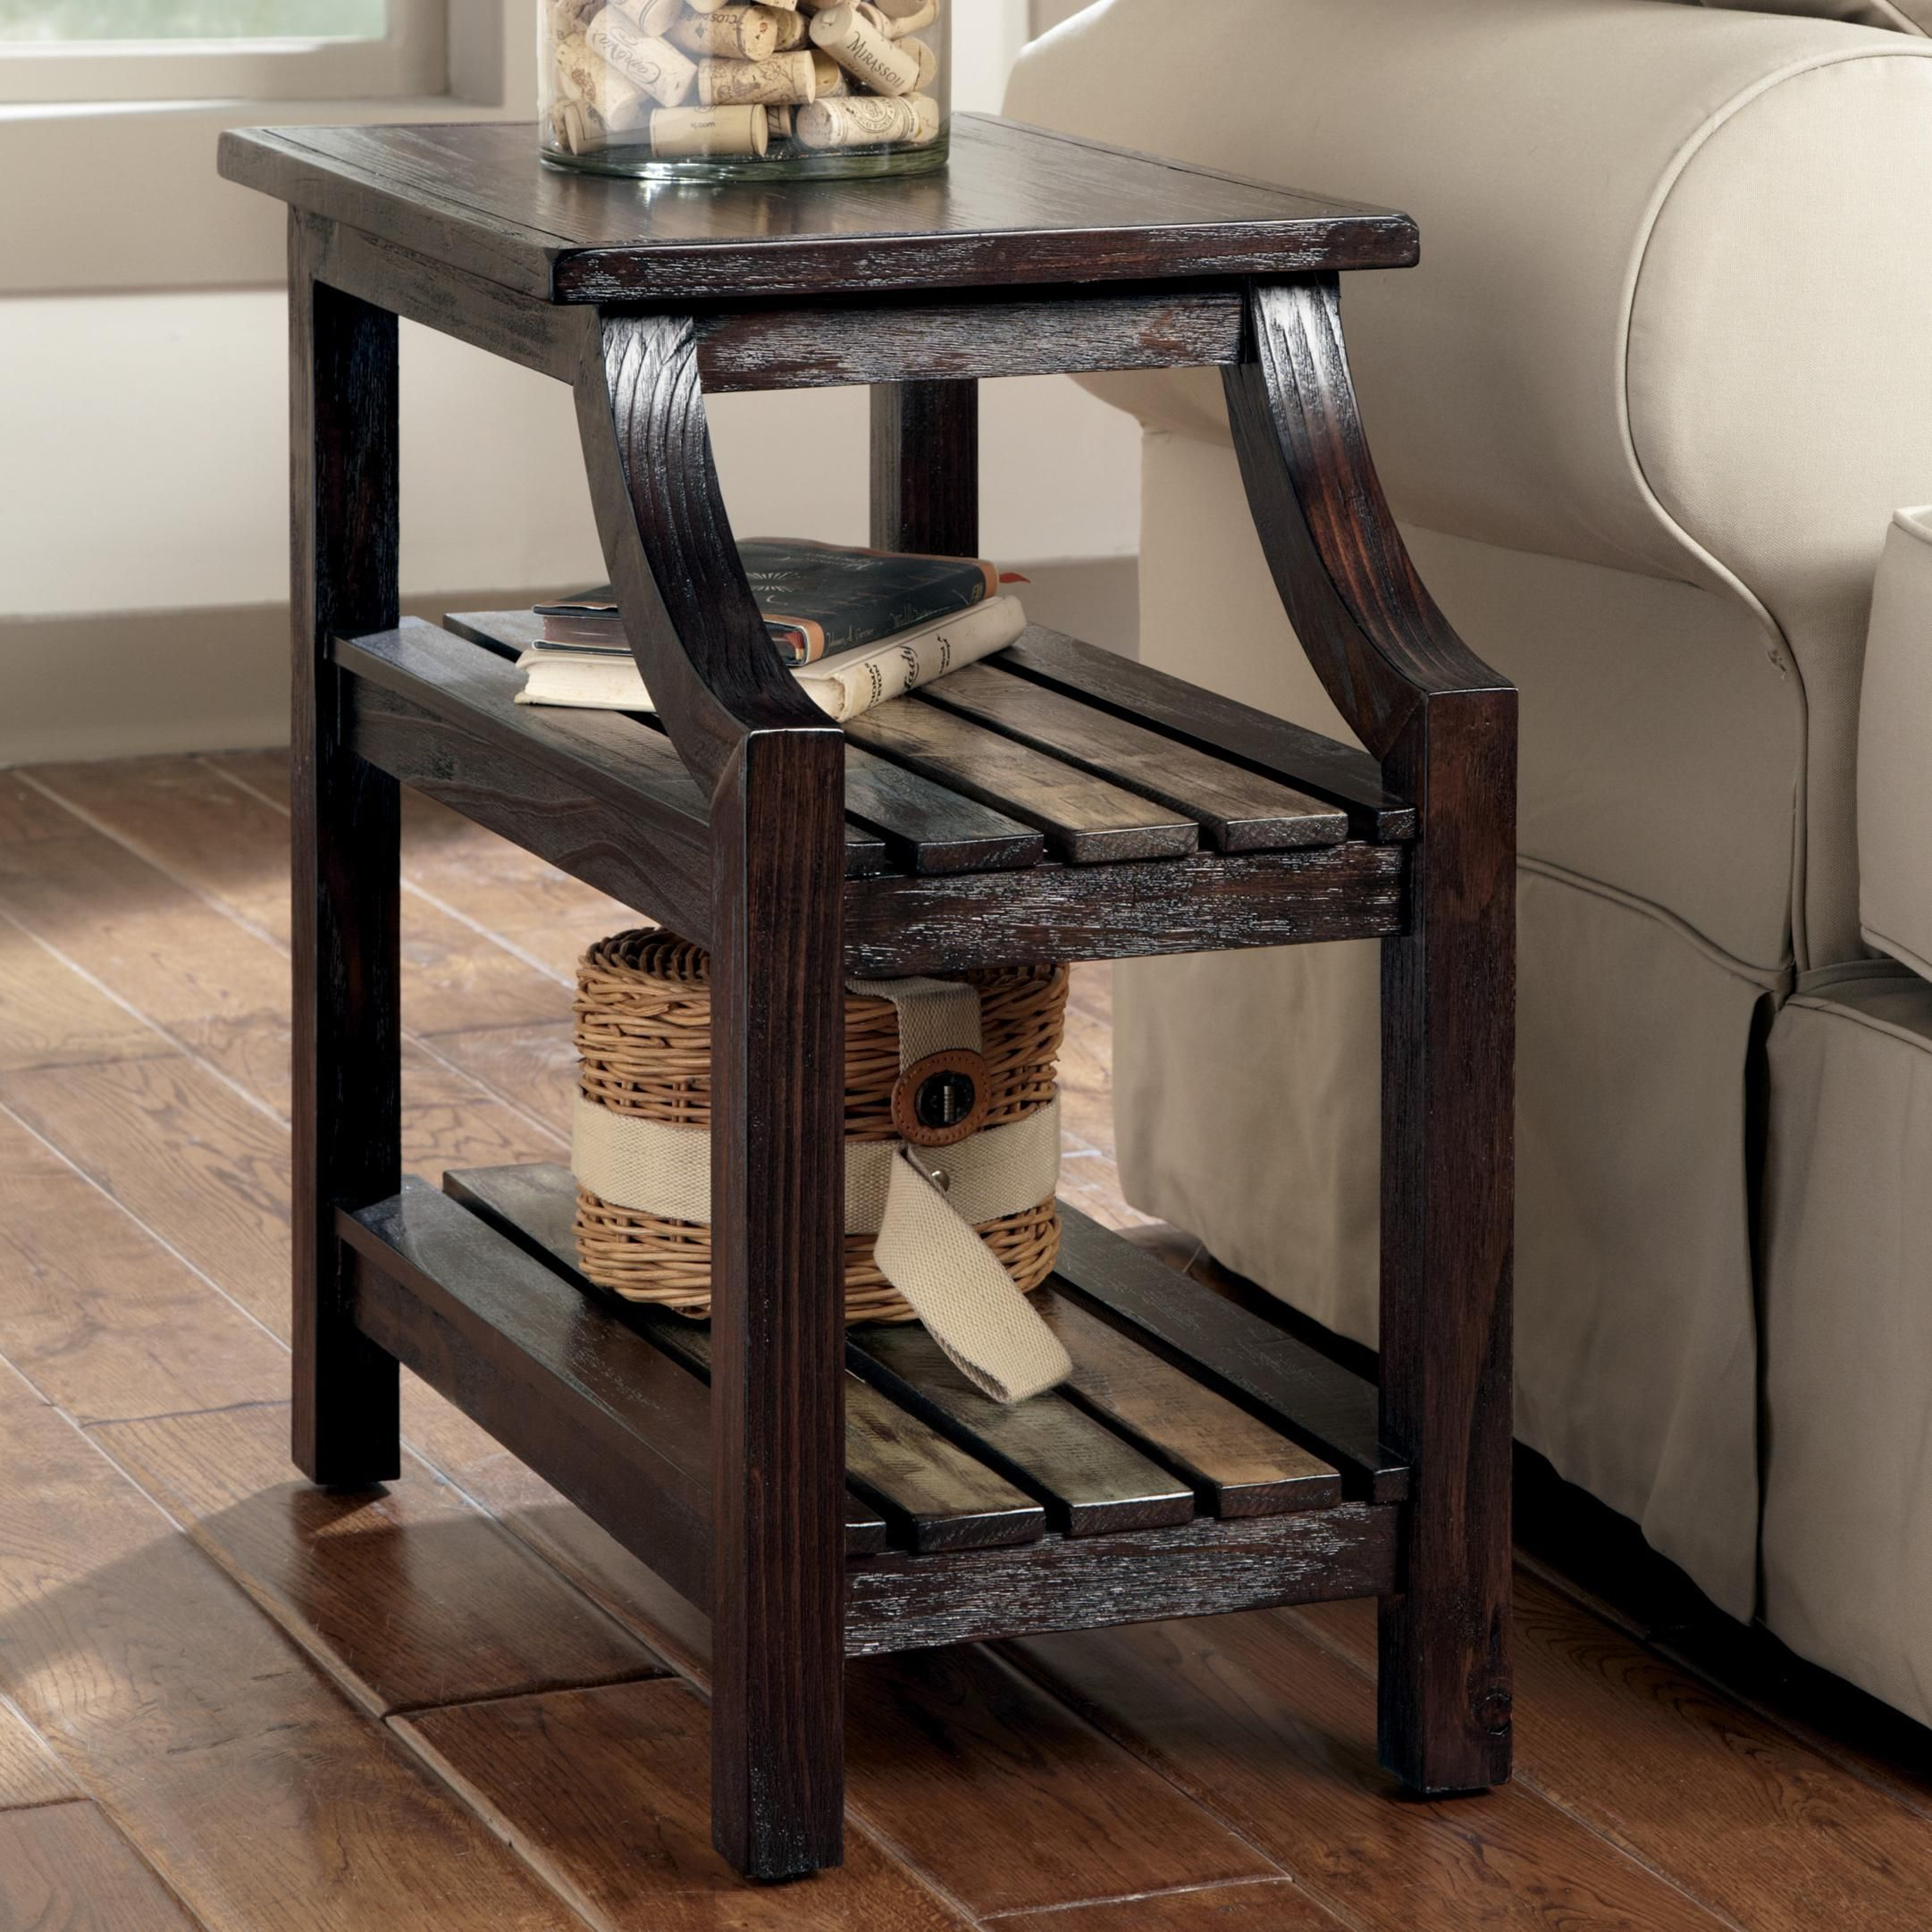 Mestler Chairside End Table By Signature Design By Ashley Becker Furniture Rustic Design Great Color Co Chair Side Table Ashley Furniture Rustic End Tables